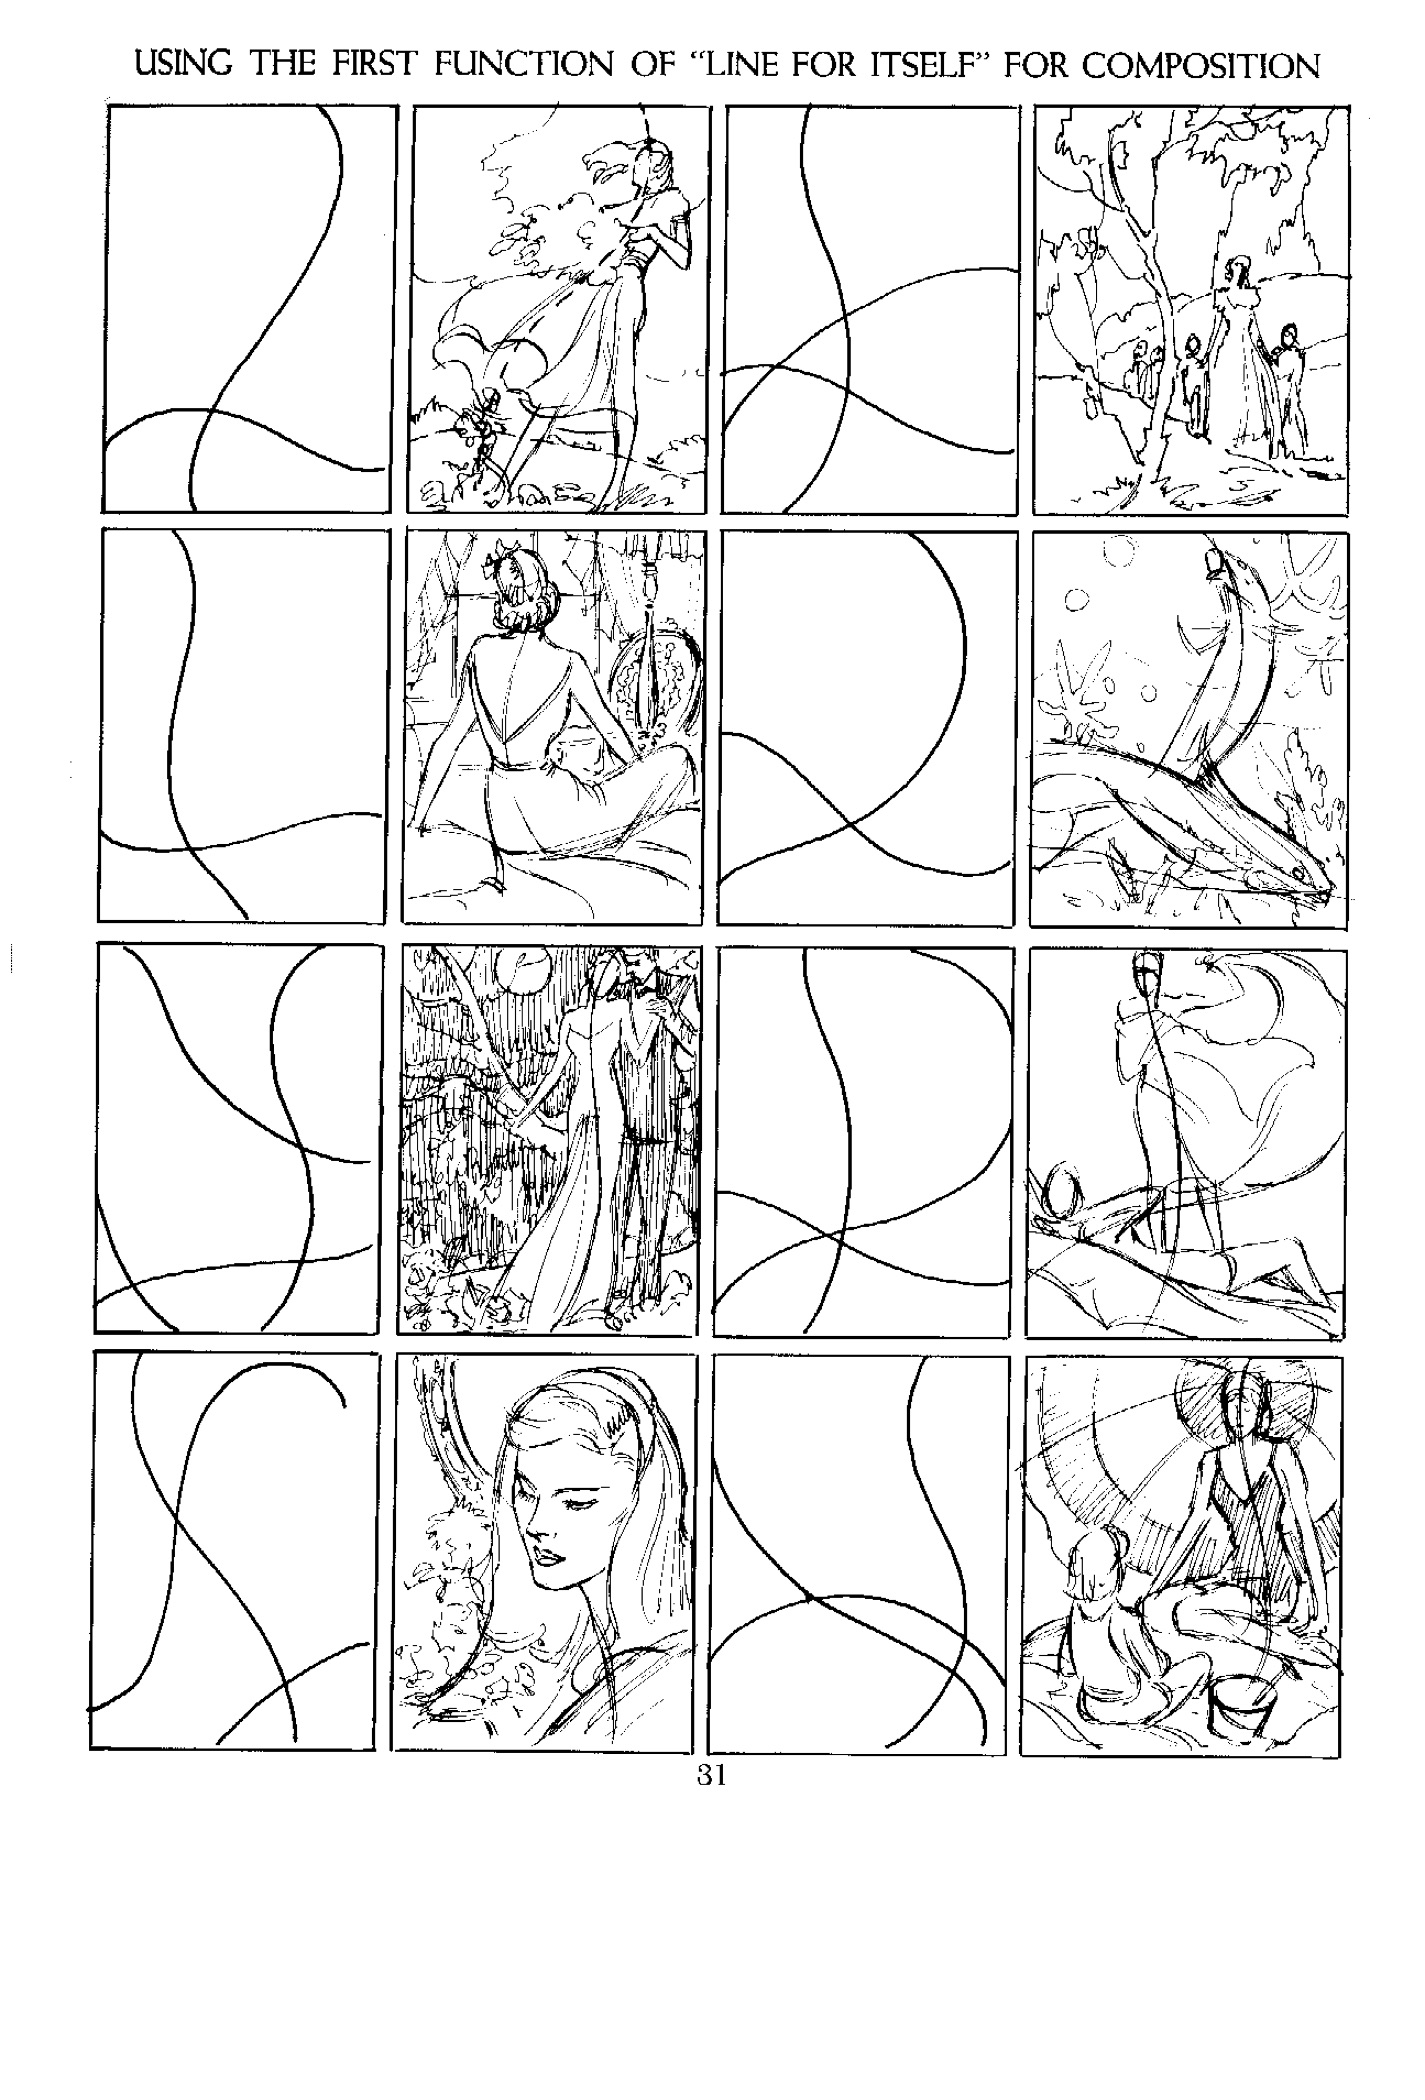 Andrew Loomis And Cartooning 1 The Importance Of Line